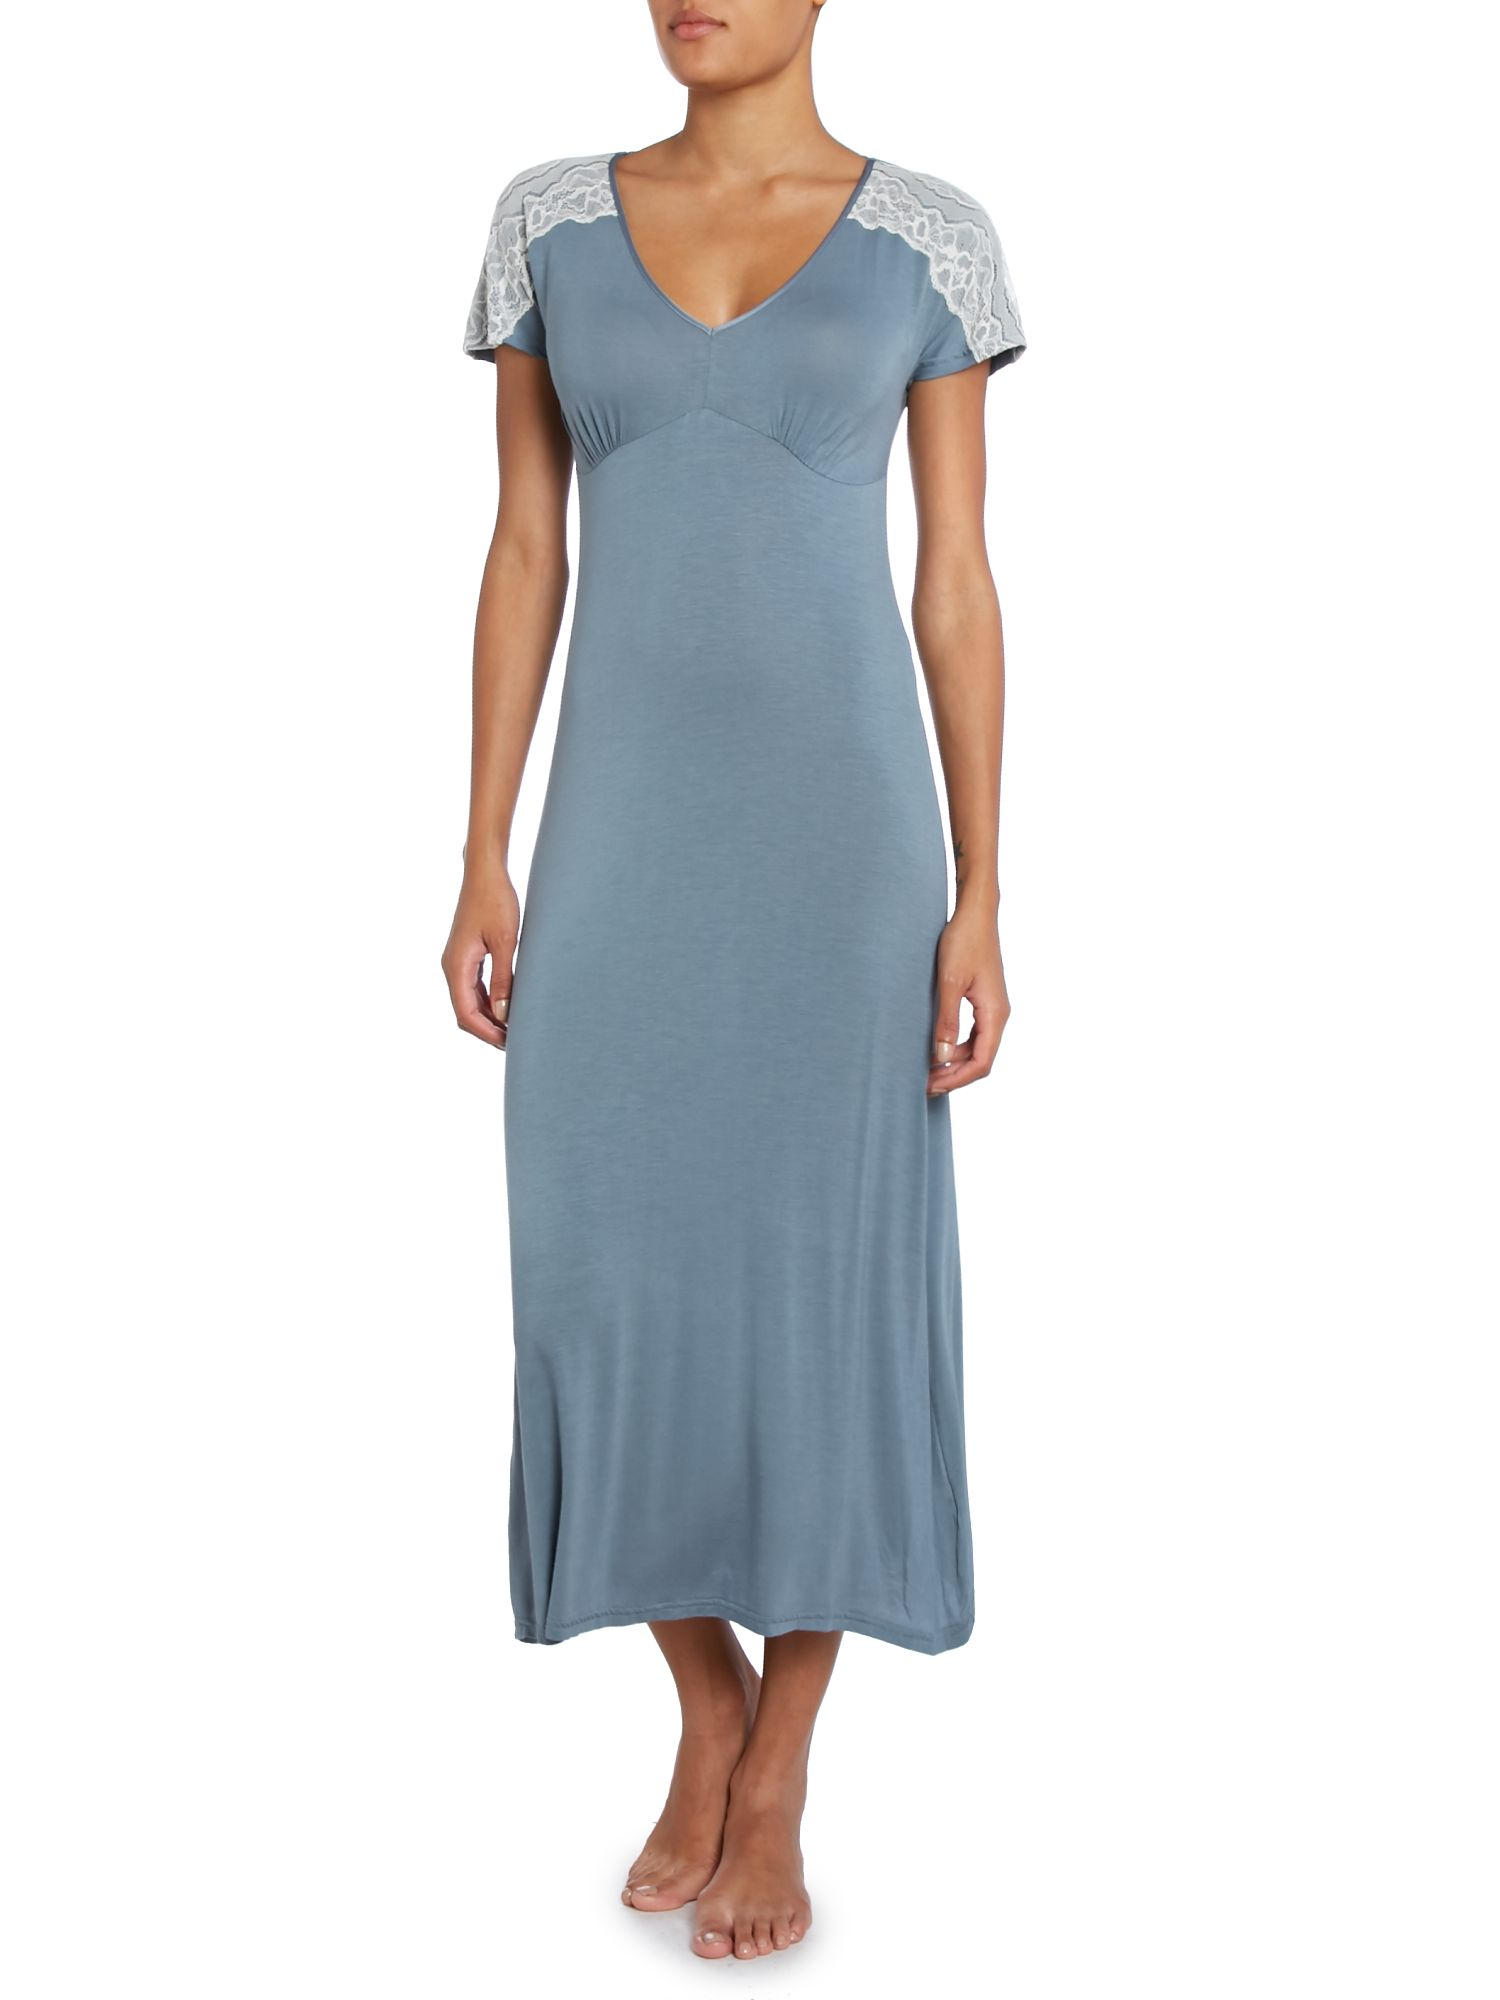 Plain jersey nightdress